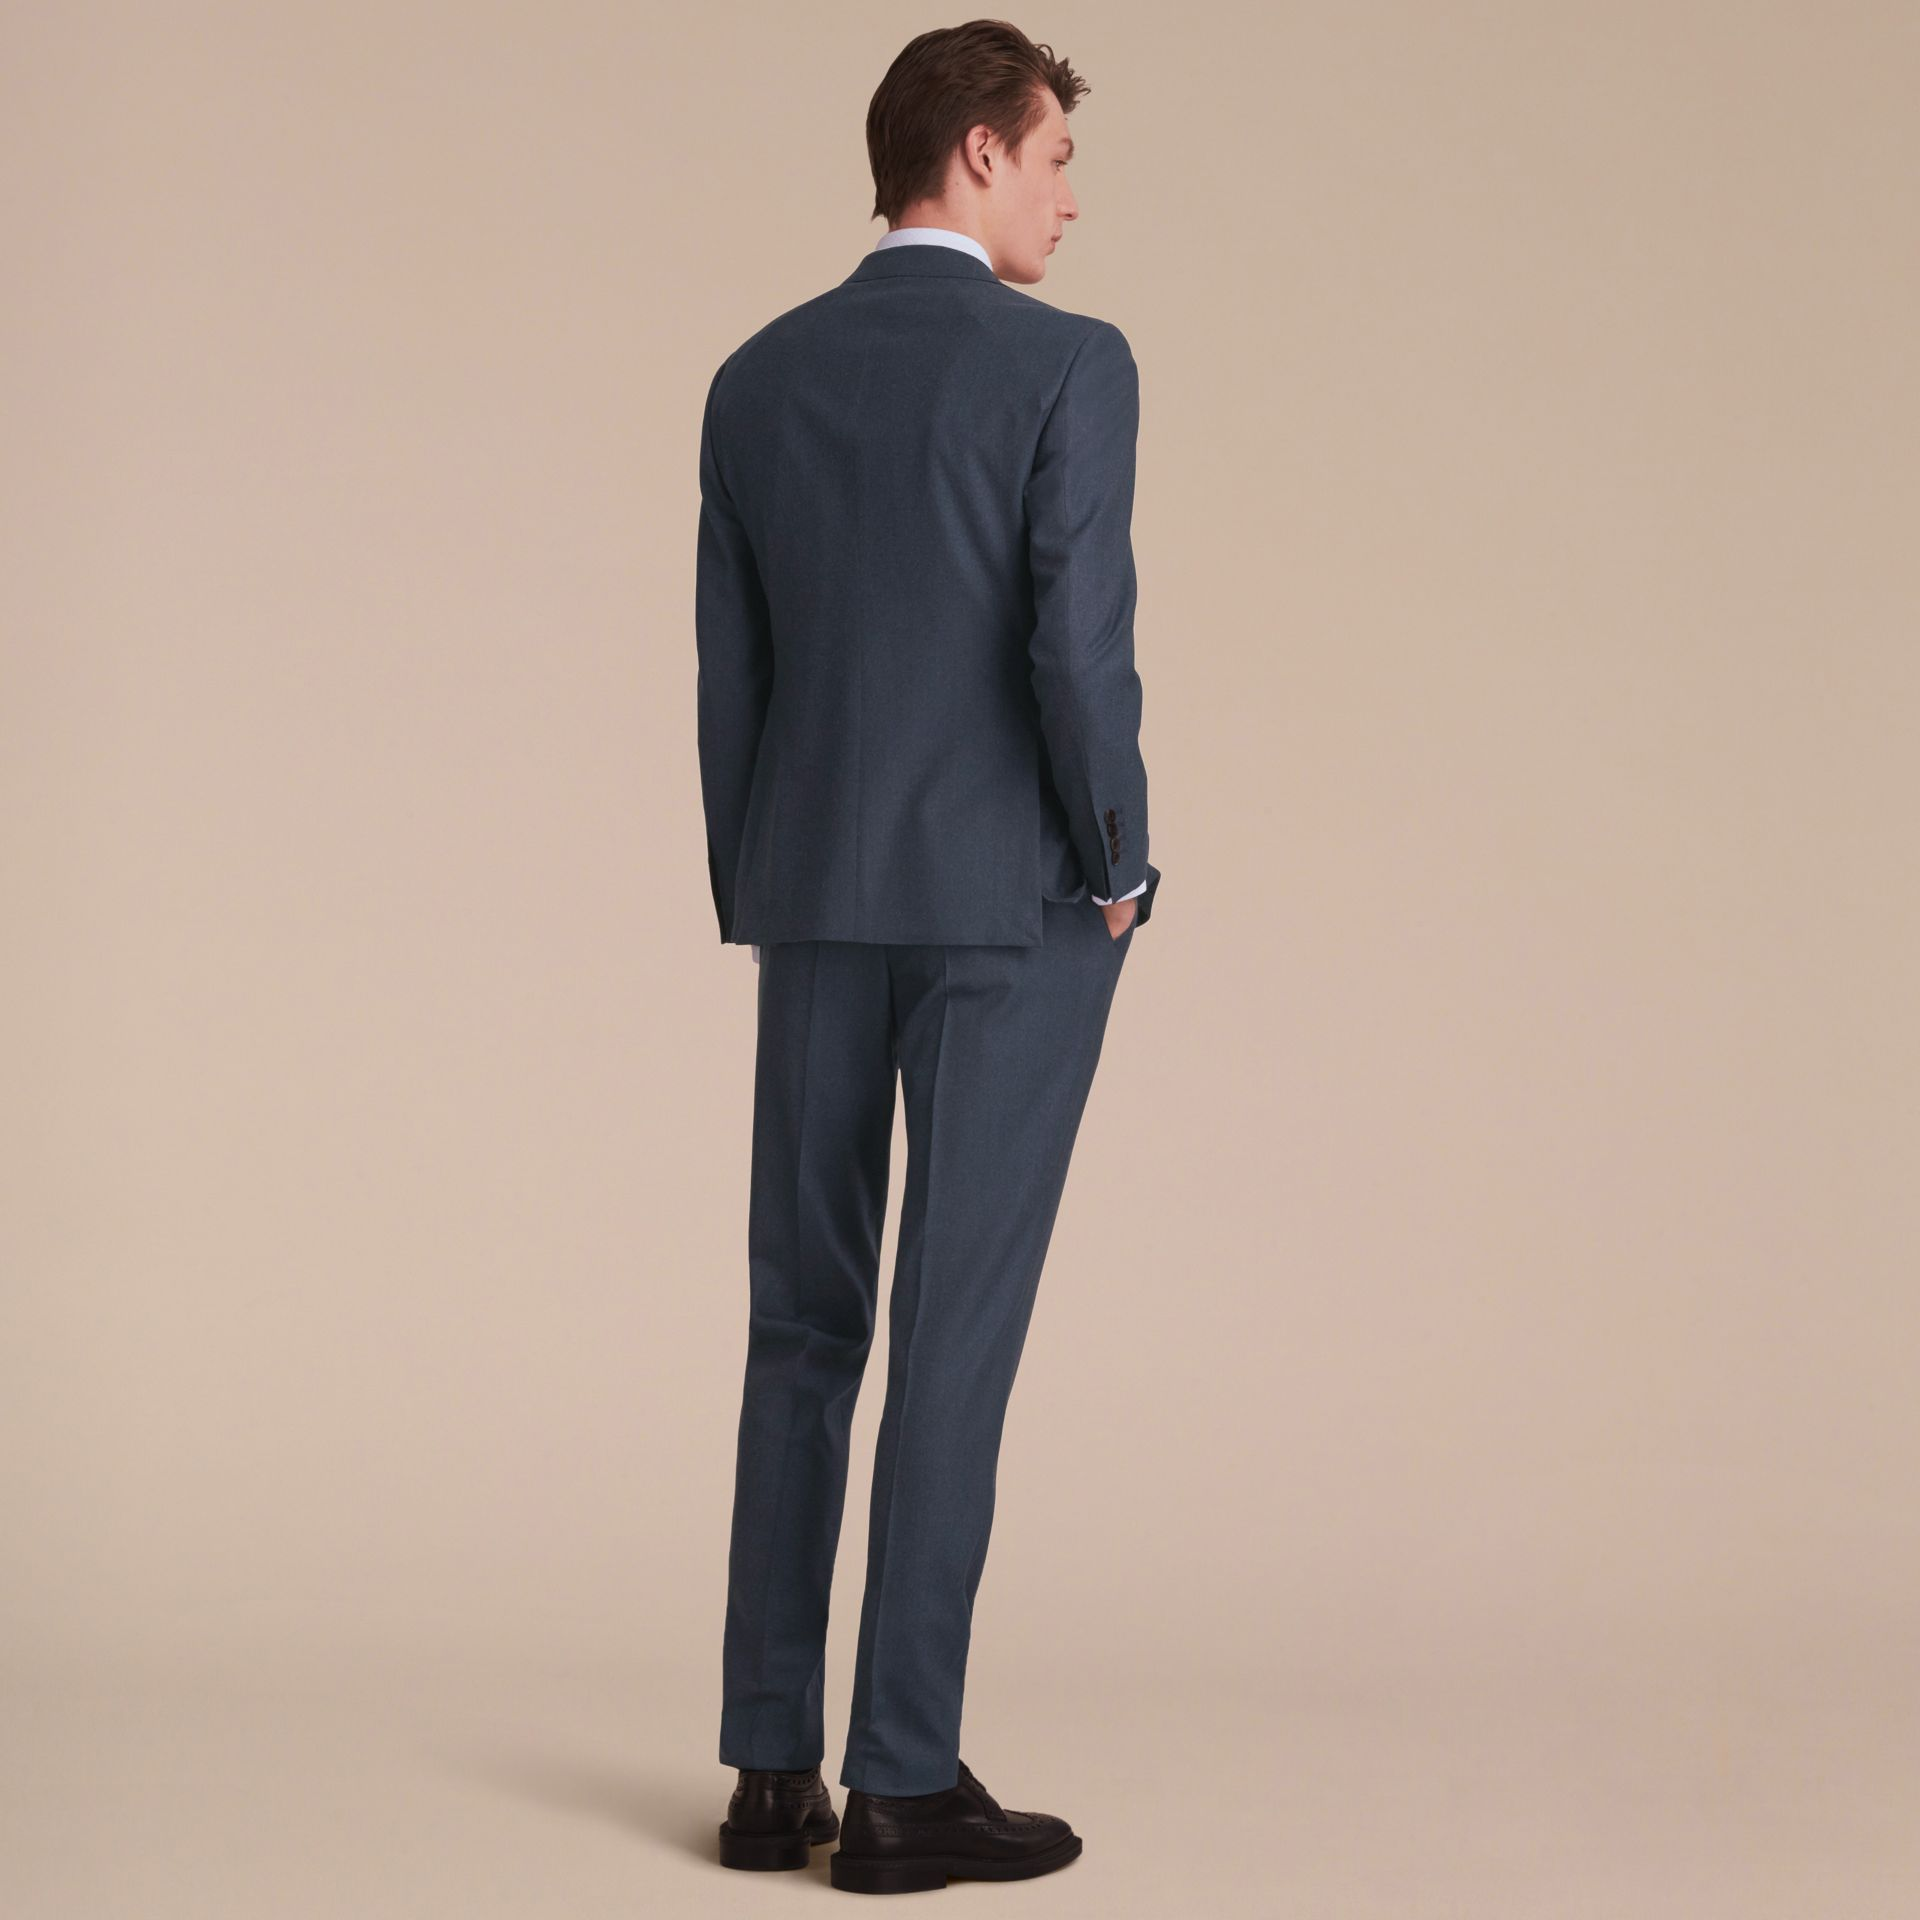 Soho Fit Wool Flannel Suit in Petrol Blue Melange - Men | Burberry - gallery image 3